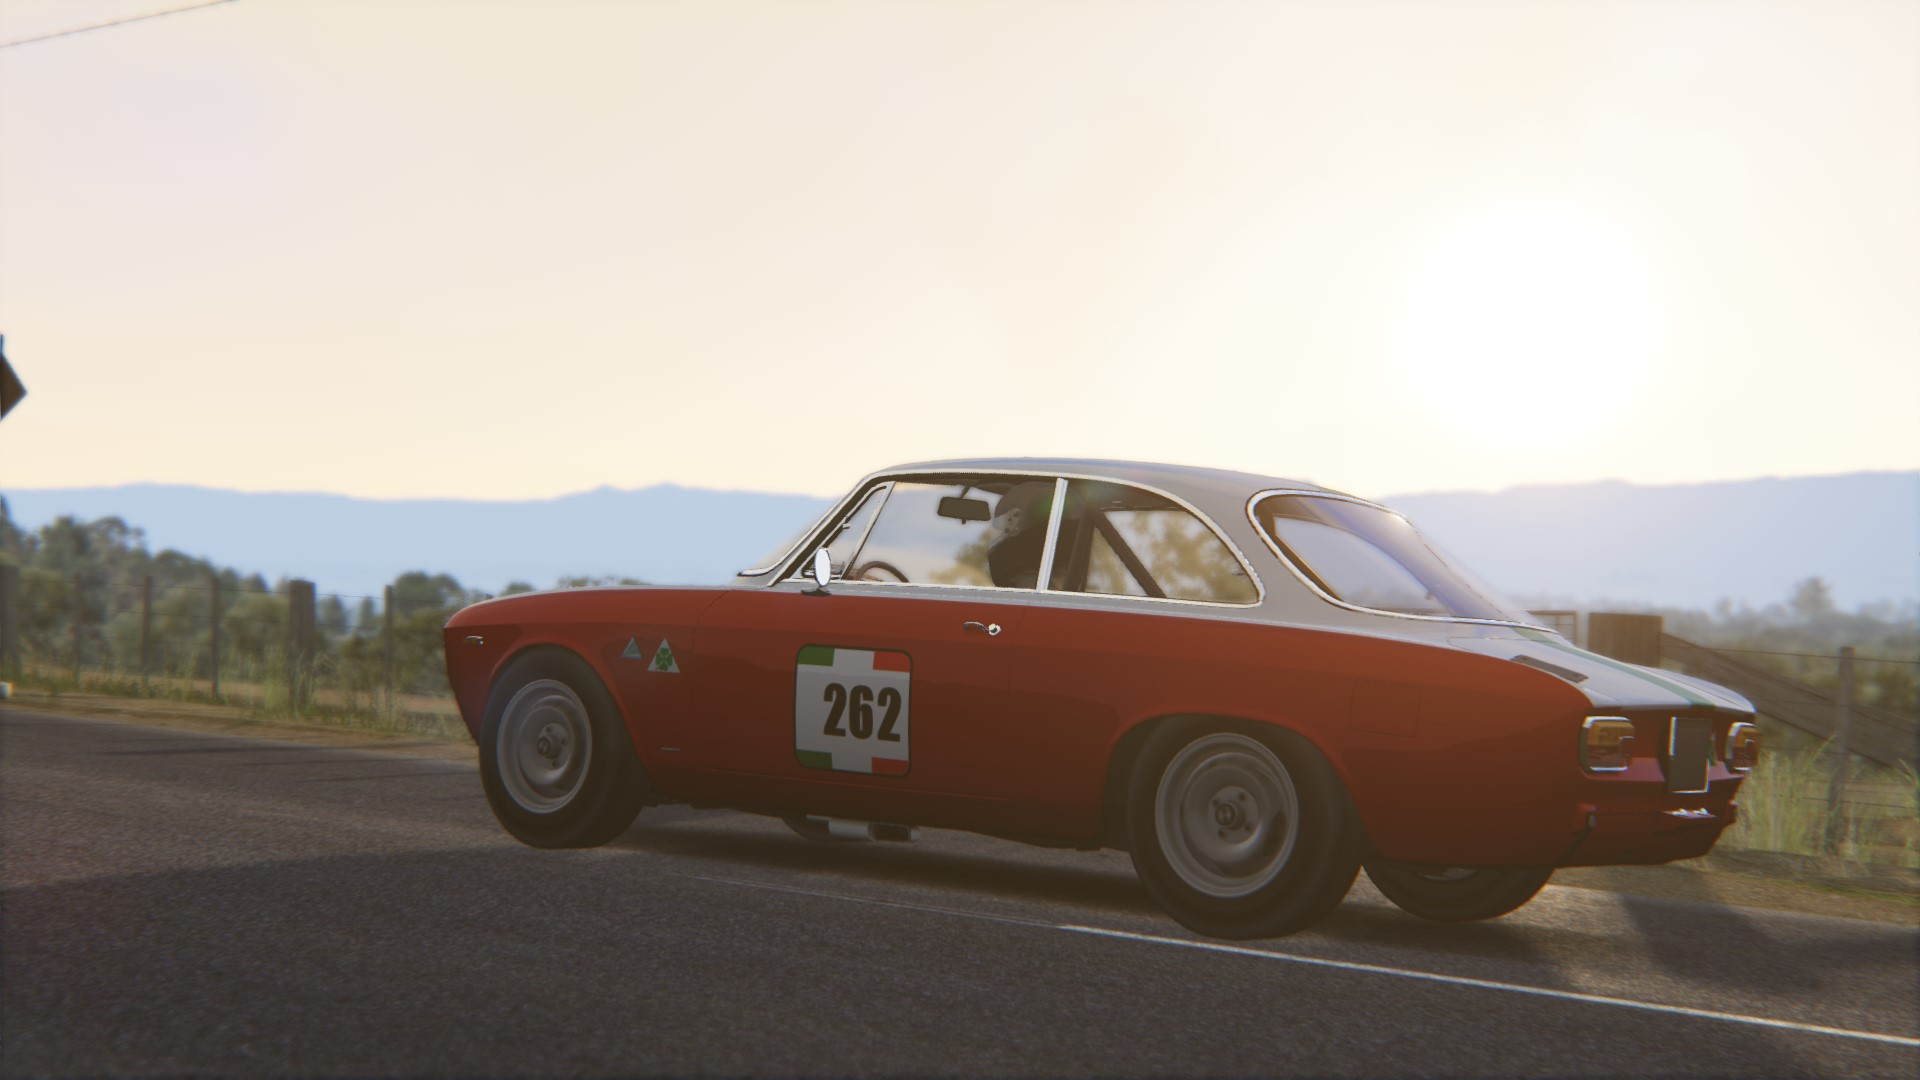 Screenshot_renault_meg250_longford_67_13-4-116-12-8-55.jpg